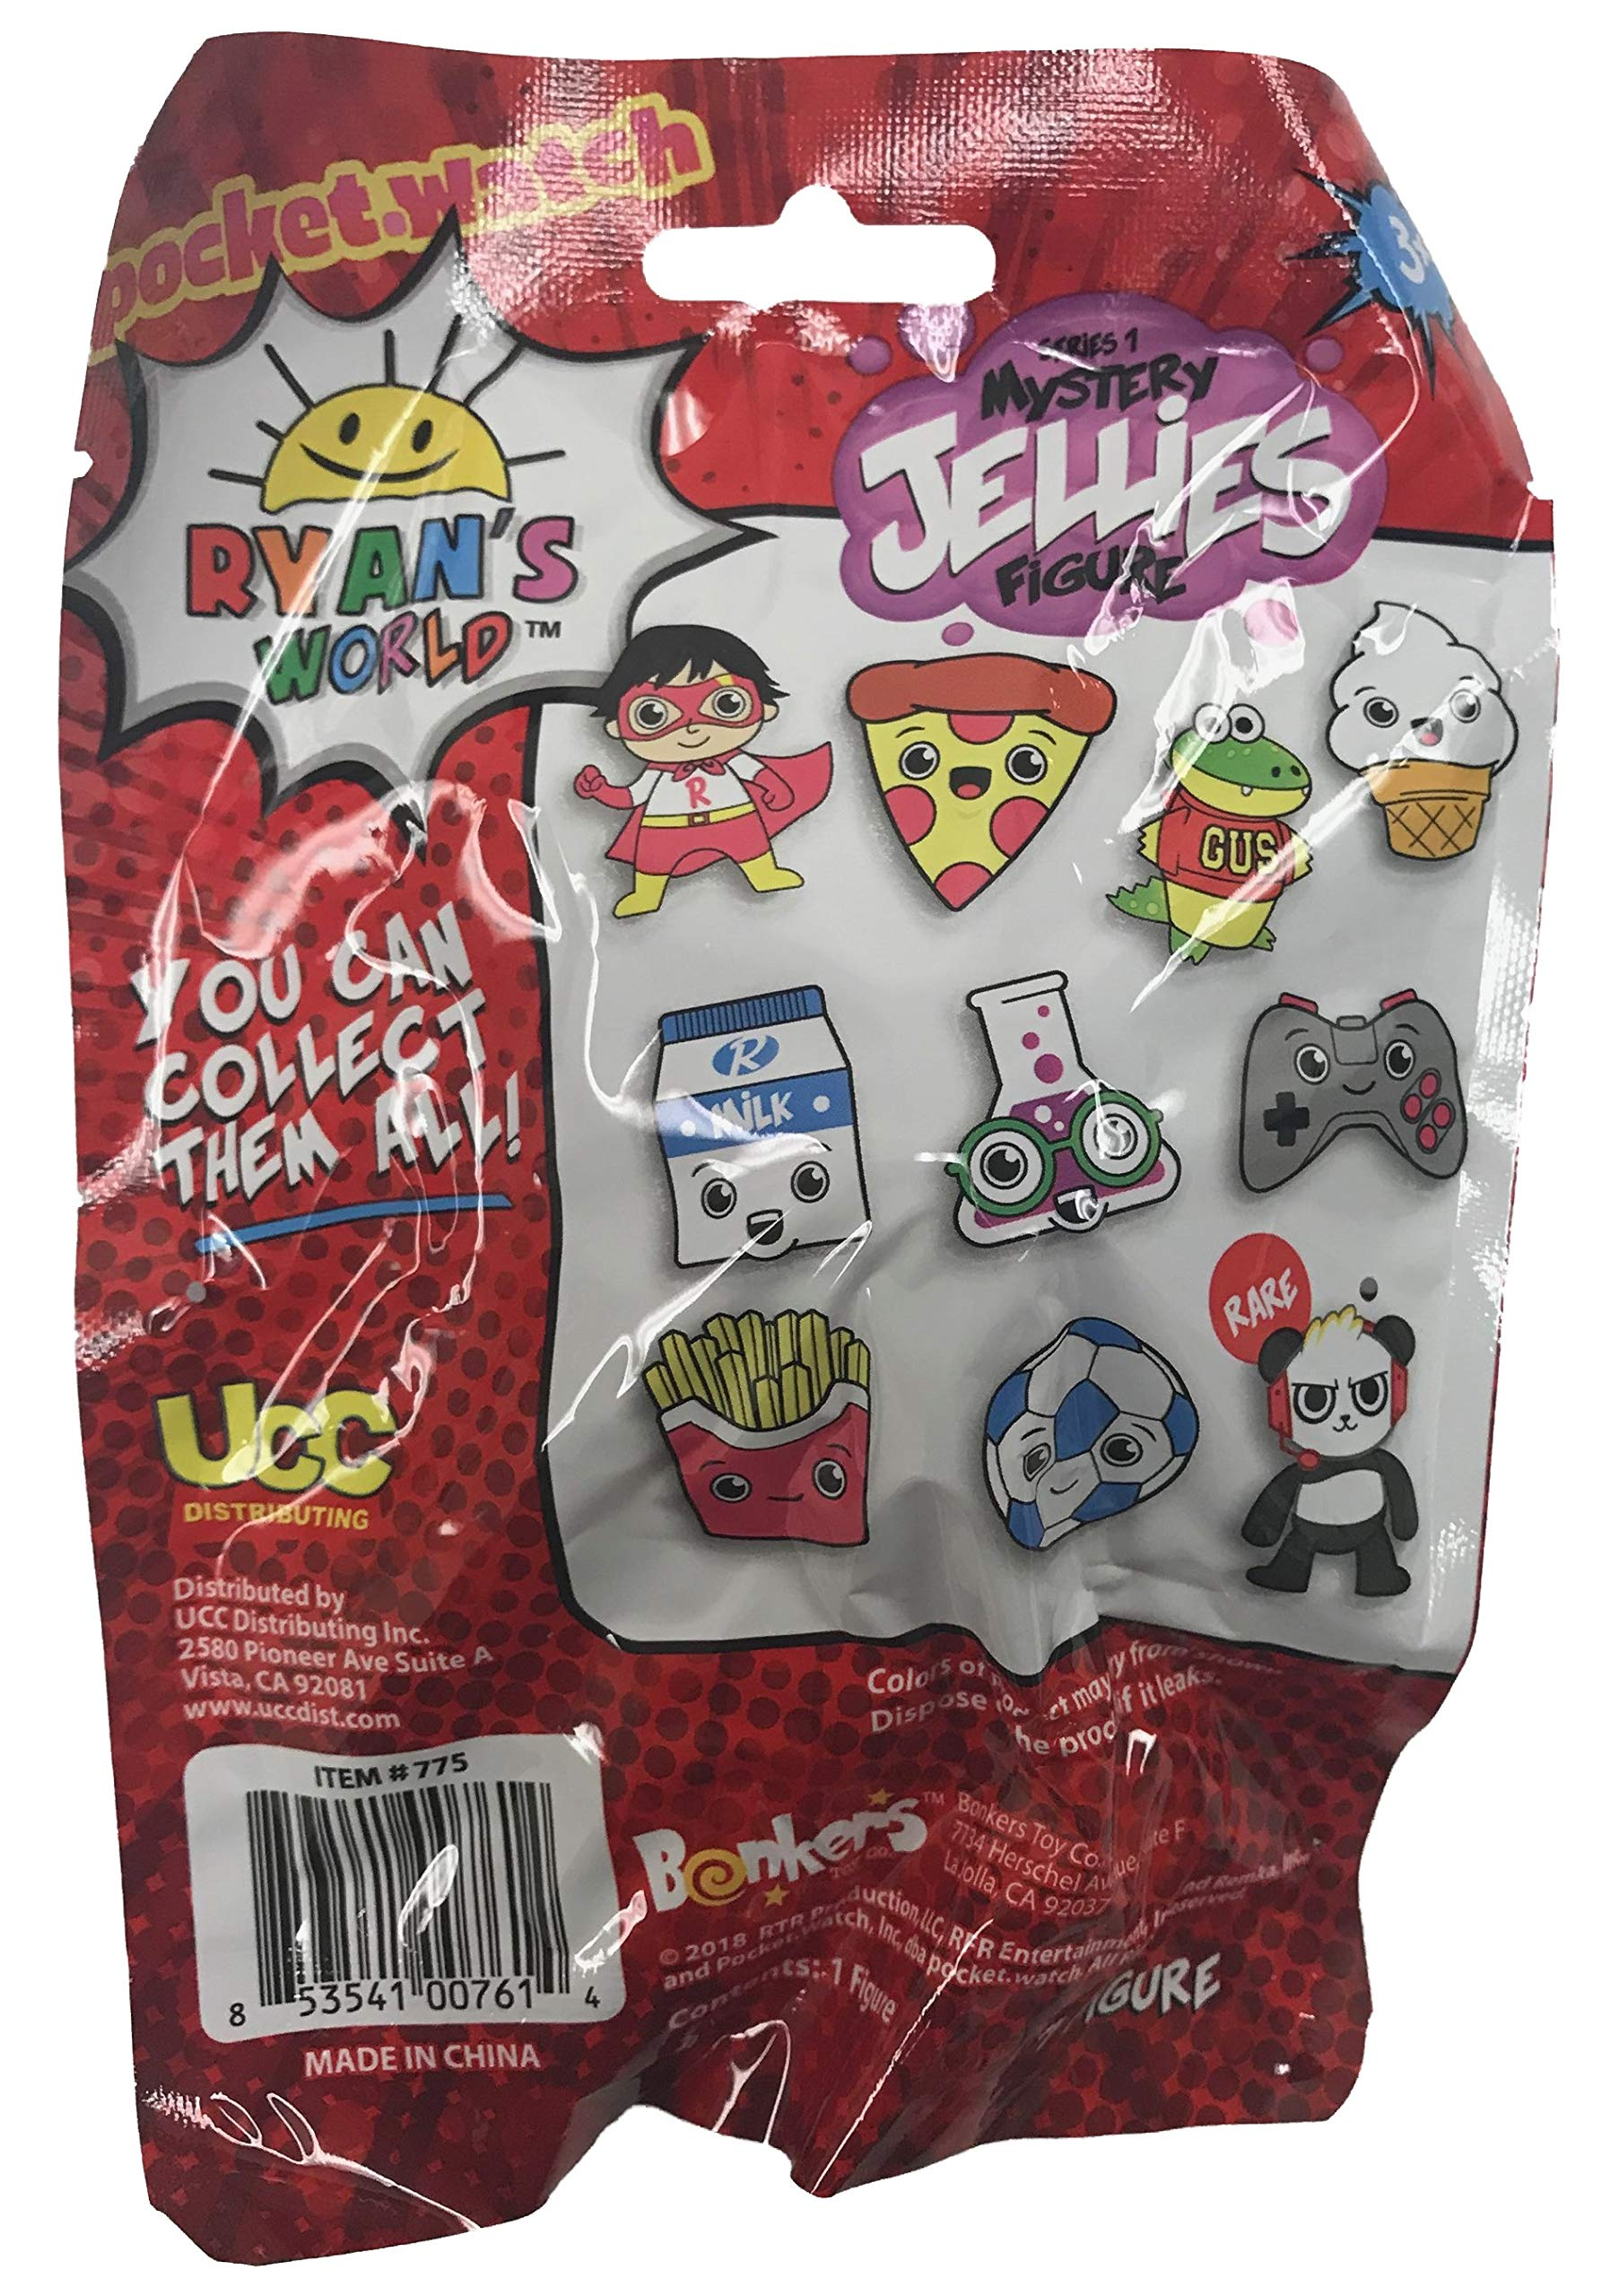 Ryan's World Surprise Jellies Squishy Toy Lot of 6 - Includes 6 Random Characters by Ryan's Toy Review by Ryan's World (Image #2)